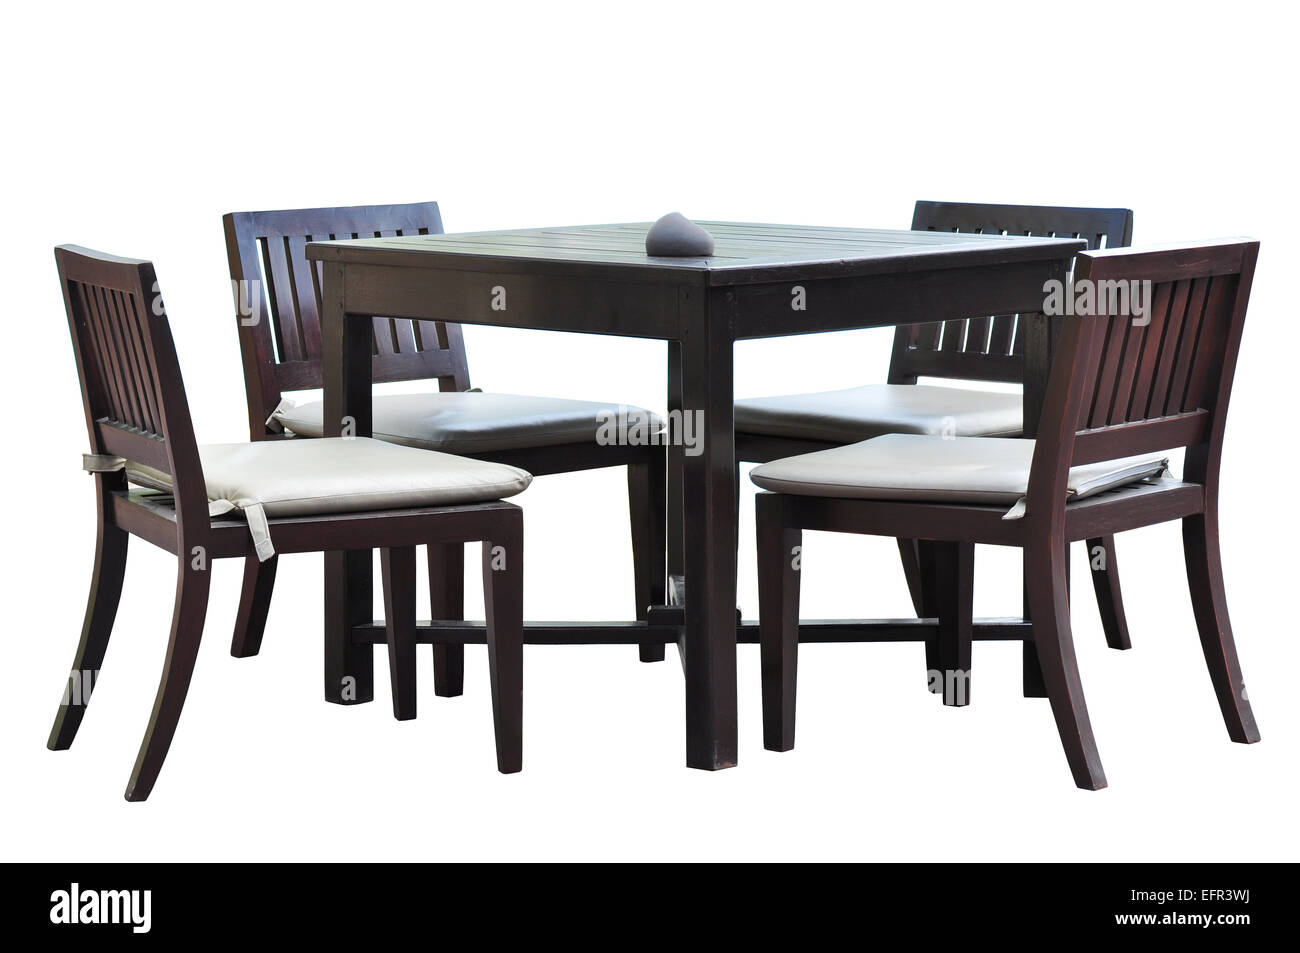 Dining furniture with clipping path - Stock Image